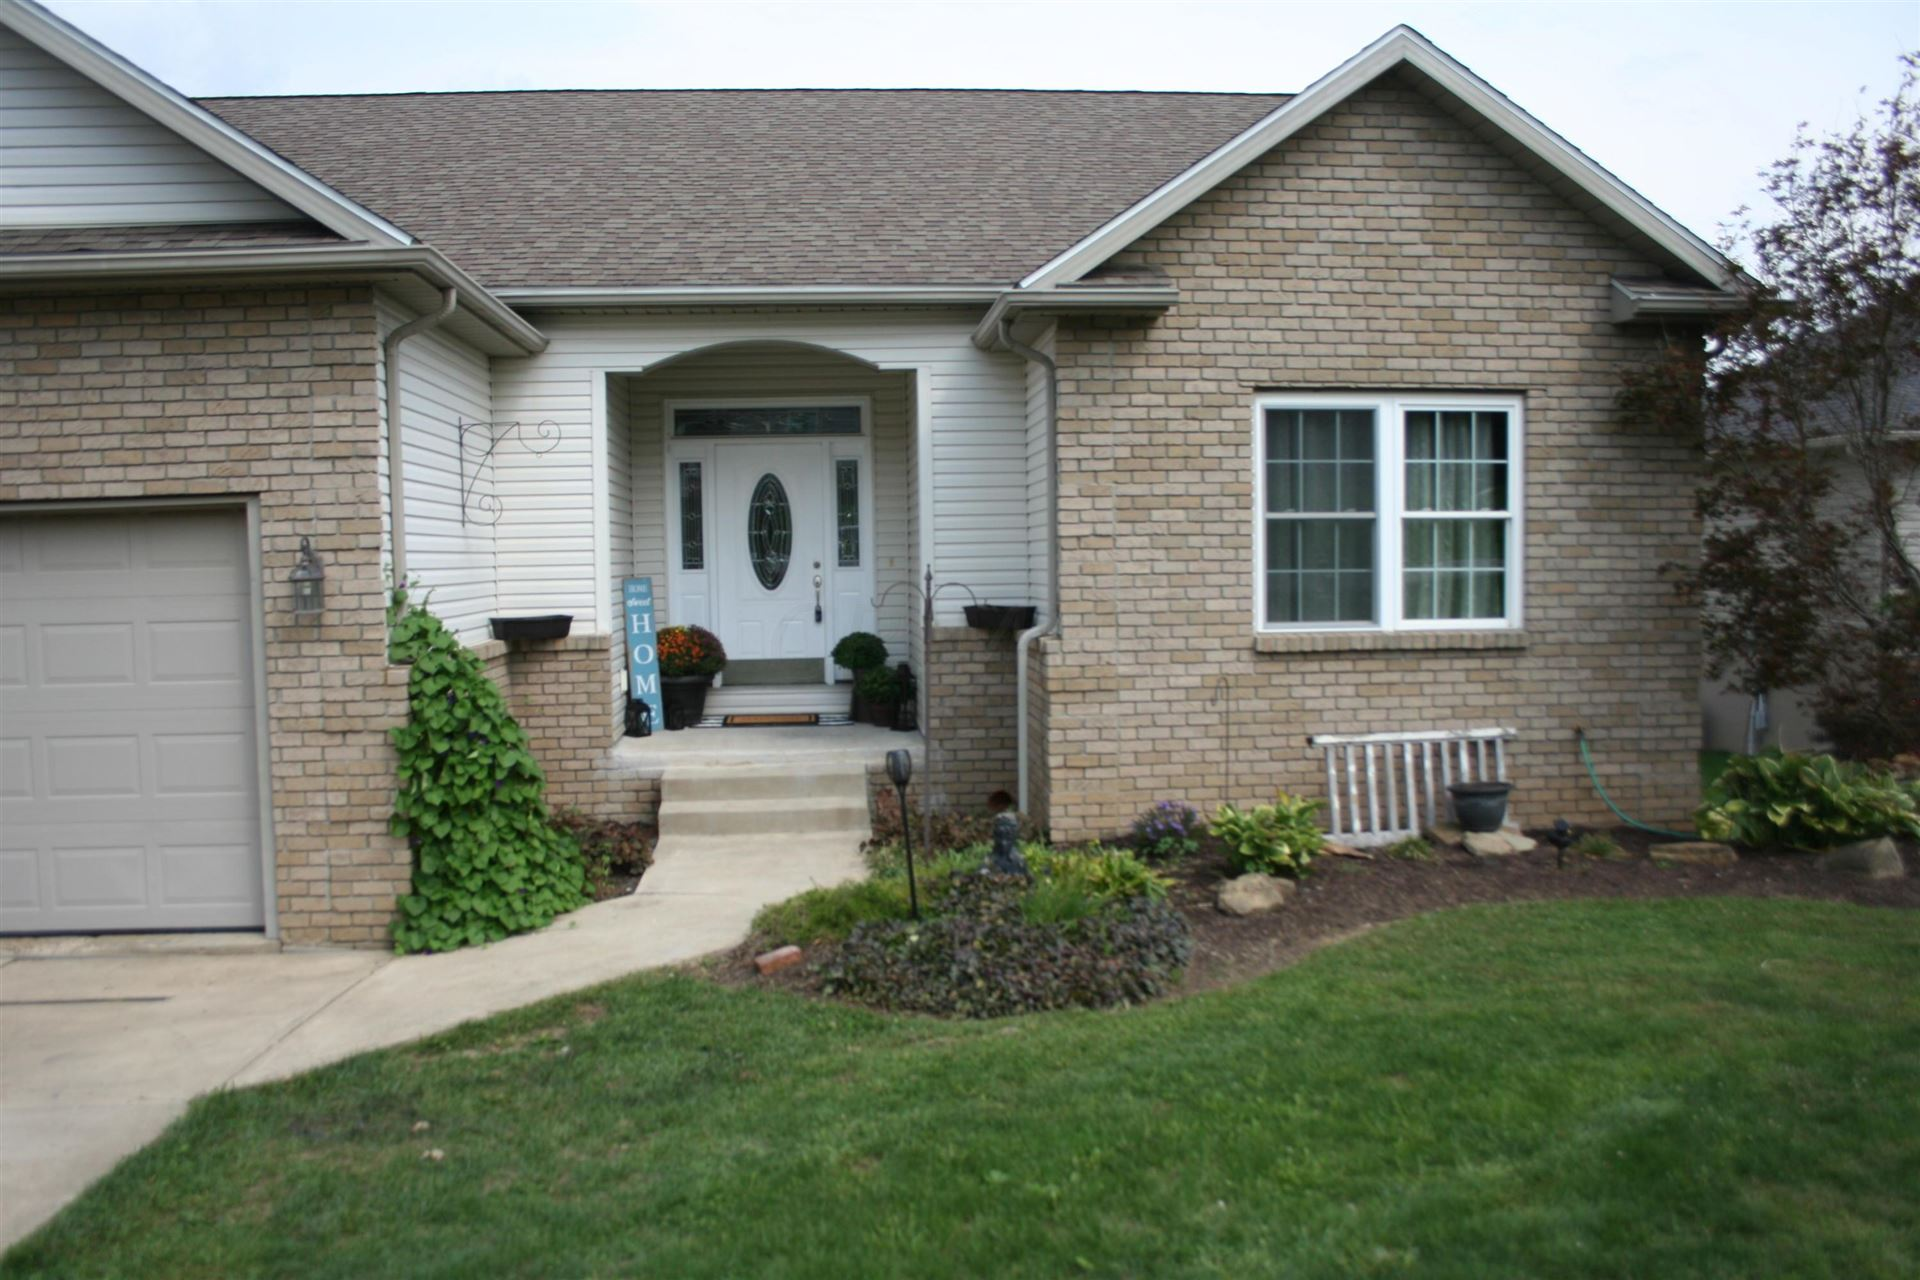 994 Country Club Drive, Howard, OH 43028 - MLS#: 220031423